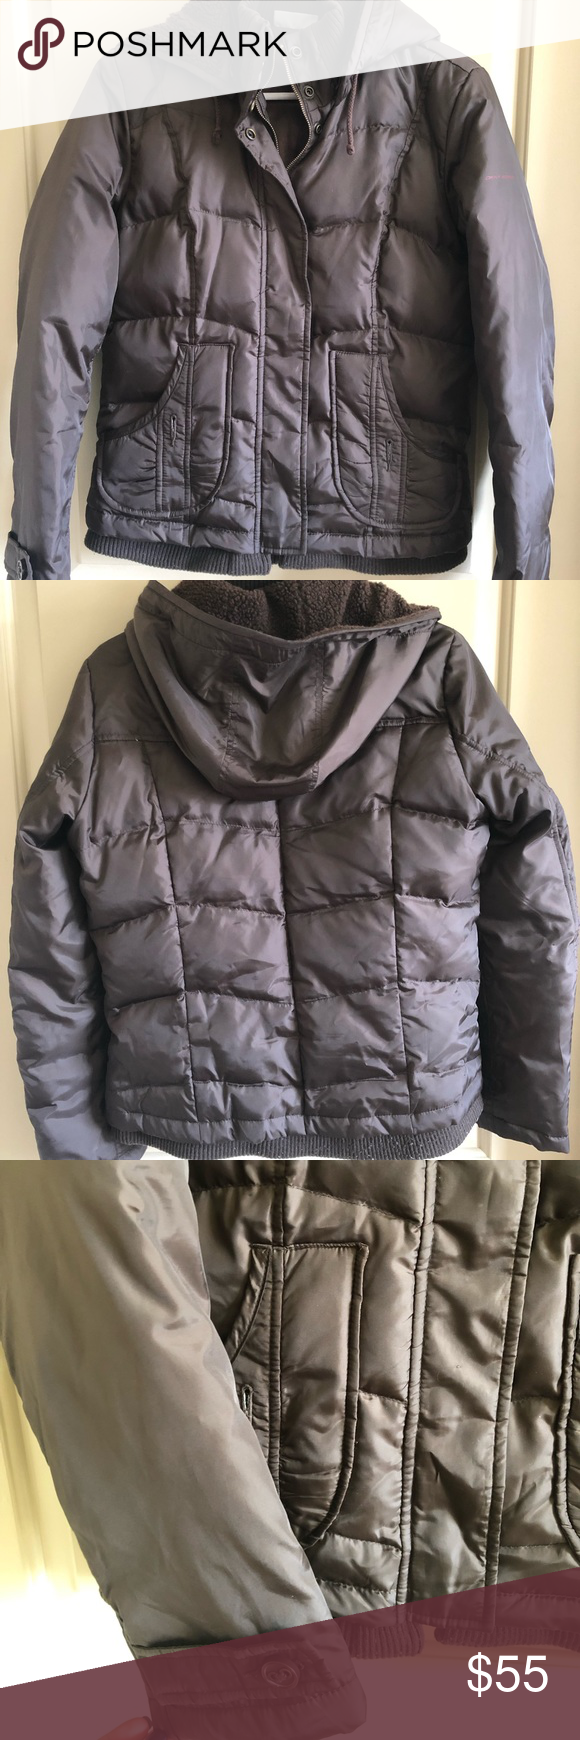 Dkny Brown Winter Jacket Brown Puffer Jacket Good Used Condition Size Small Dkny Jackets Coats Puffers Winter Jackets Jackets Dkny [ 1740 x 580 Pixel ]